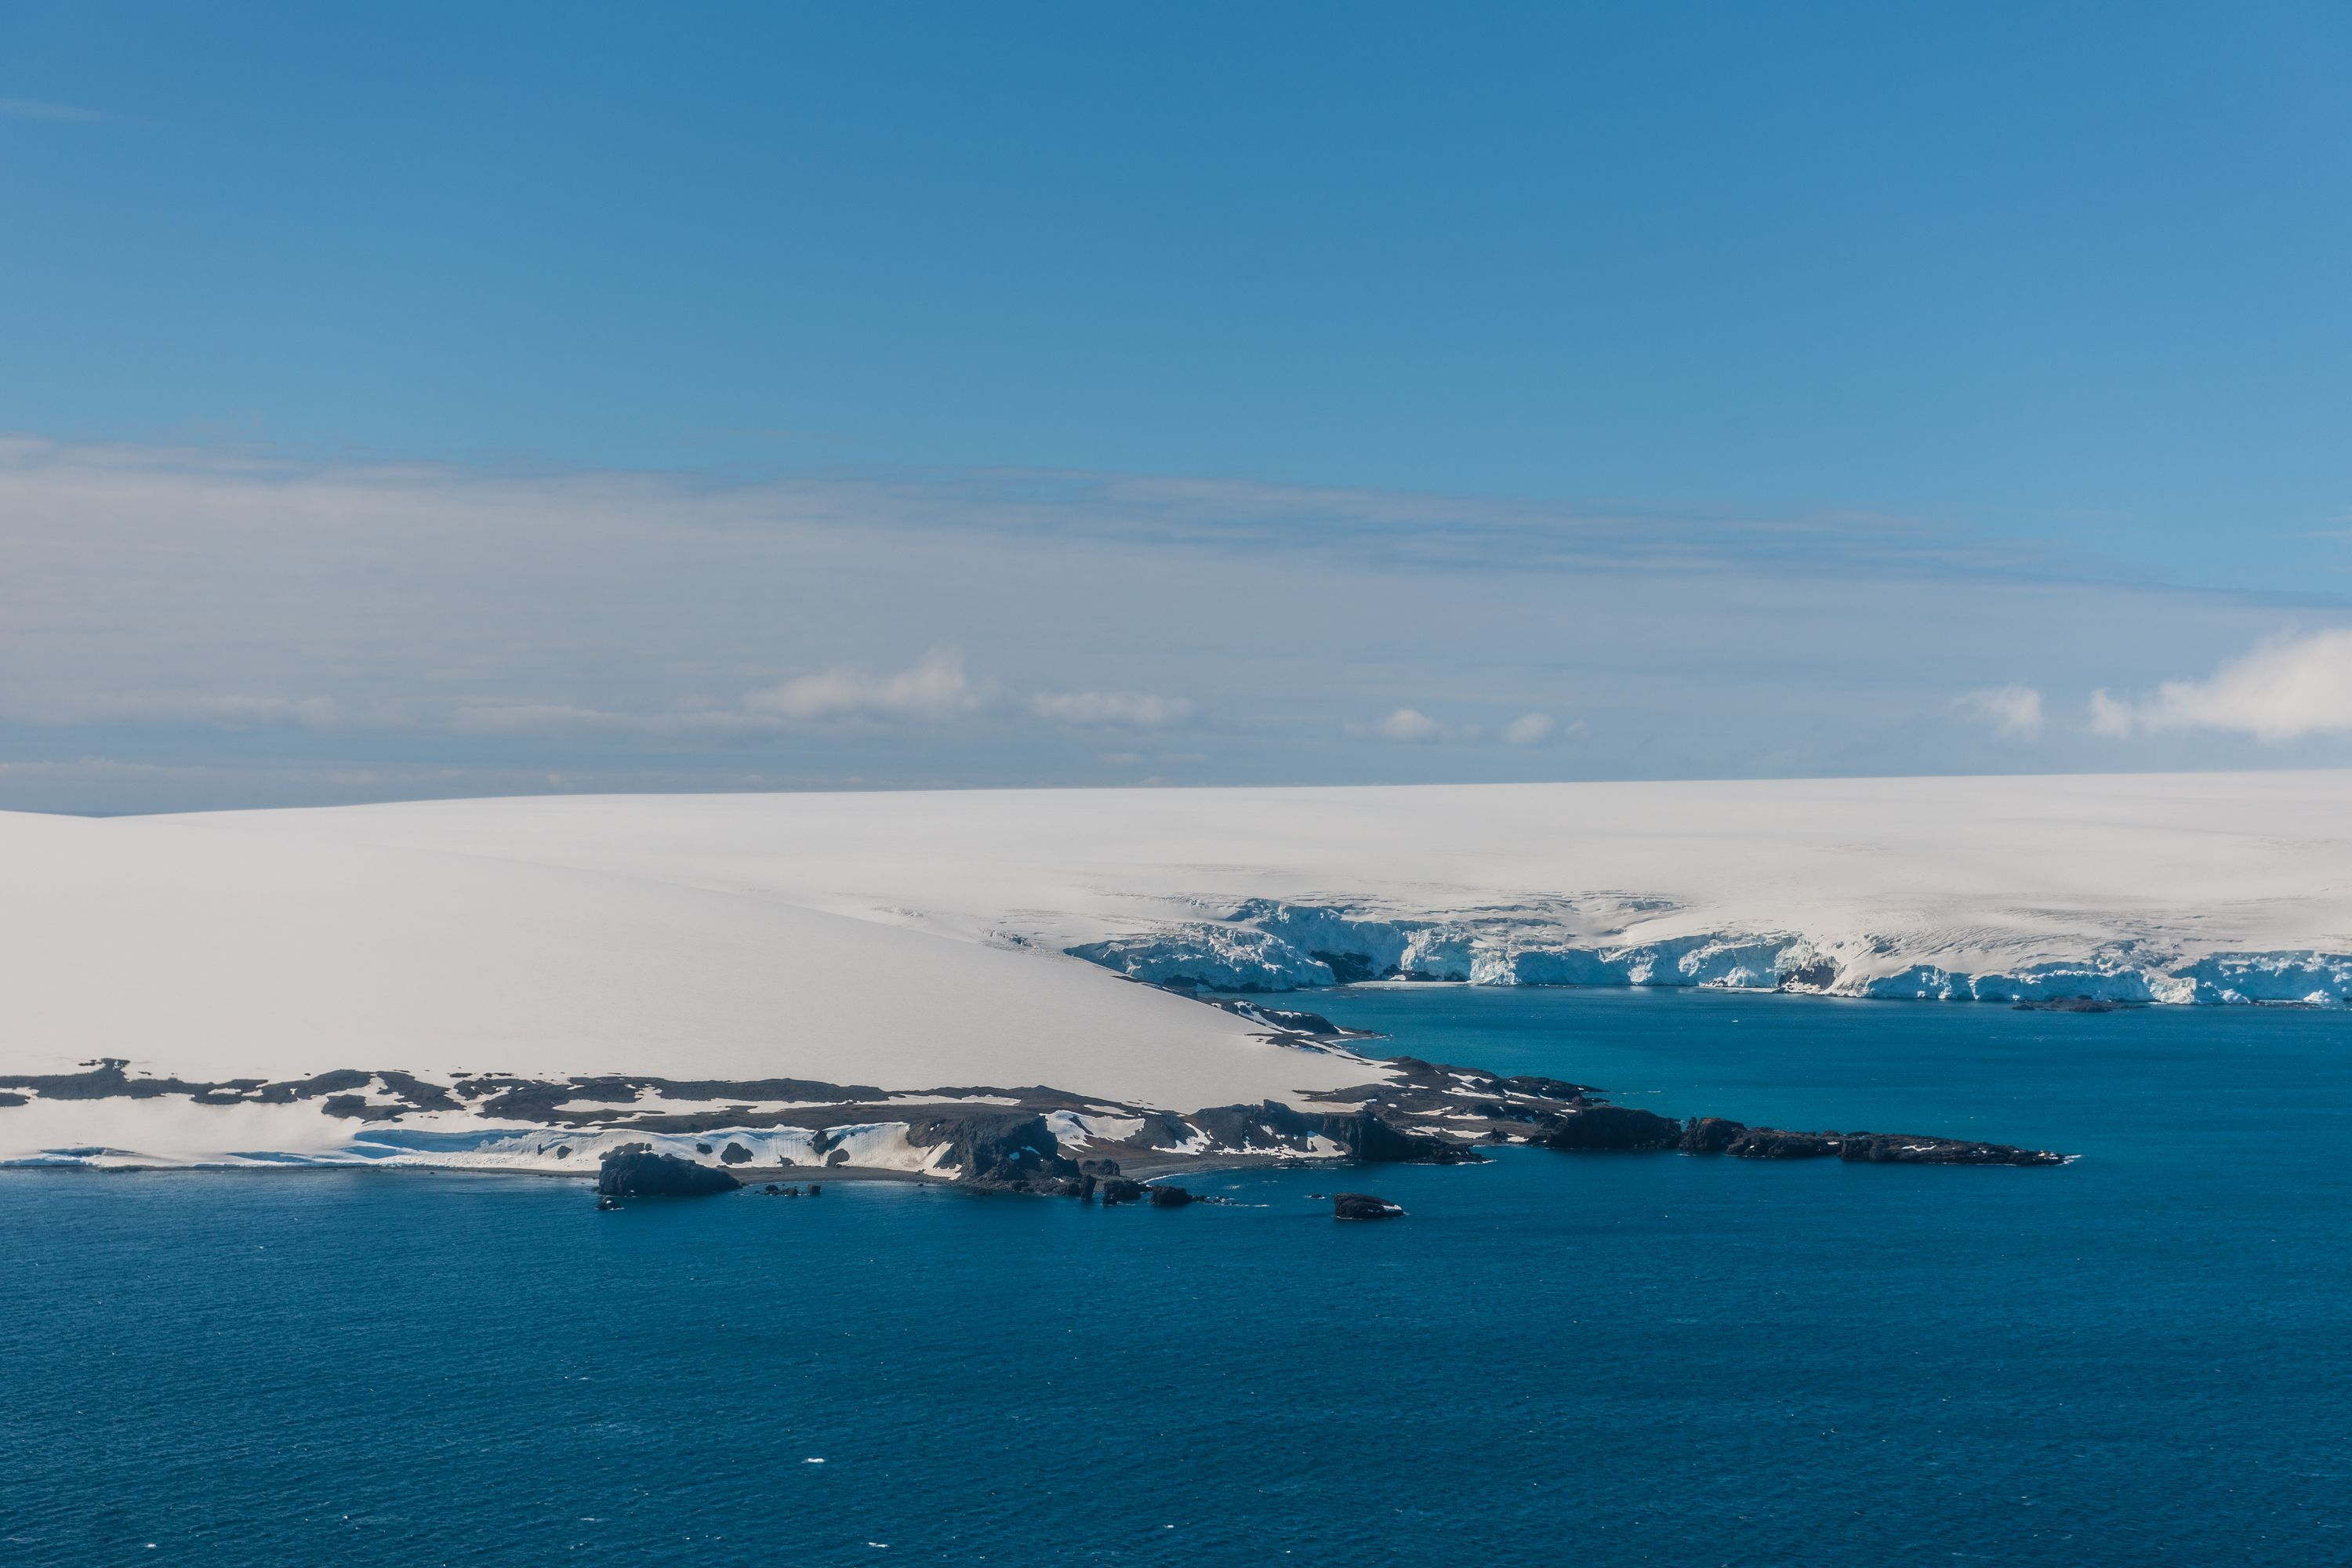 Antarctica hits 69 degrees days after record-breaking heat - Axios